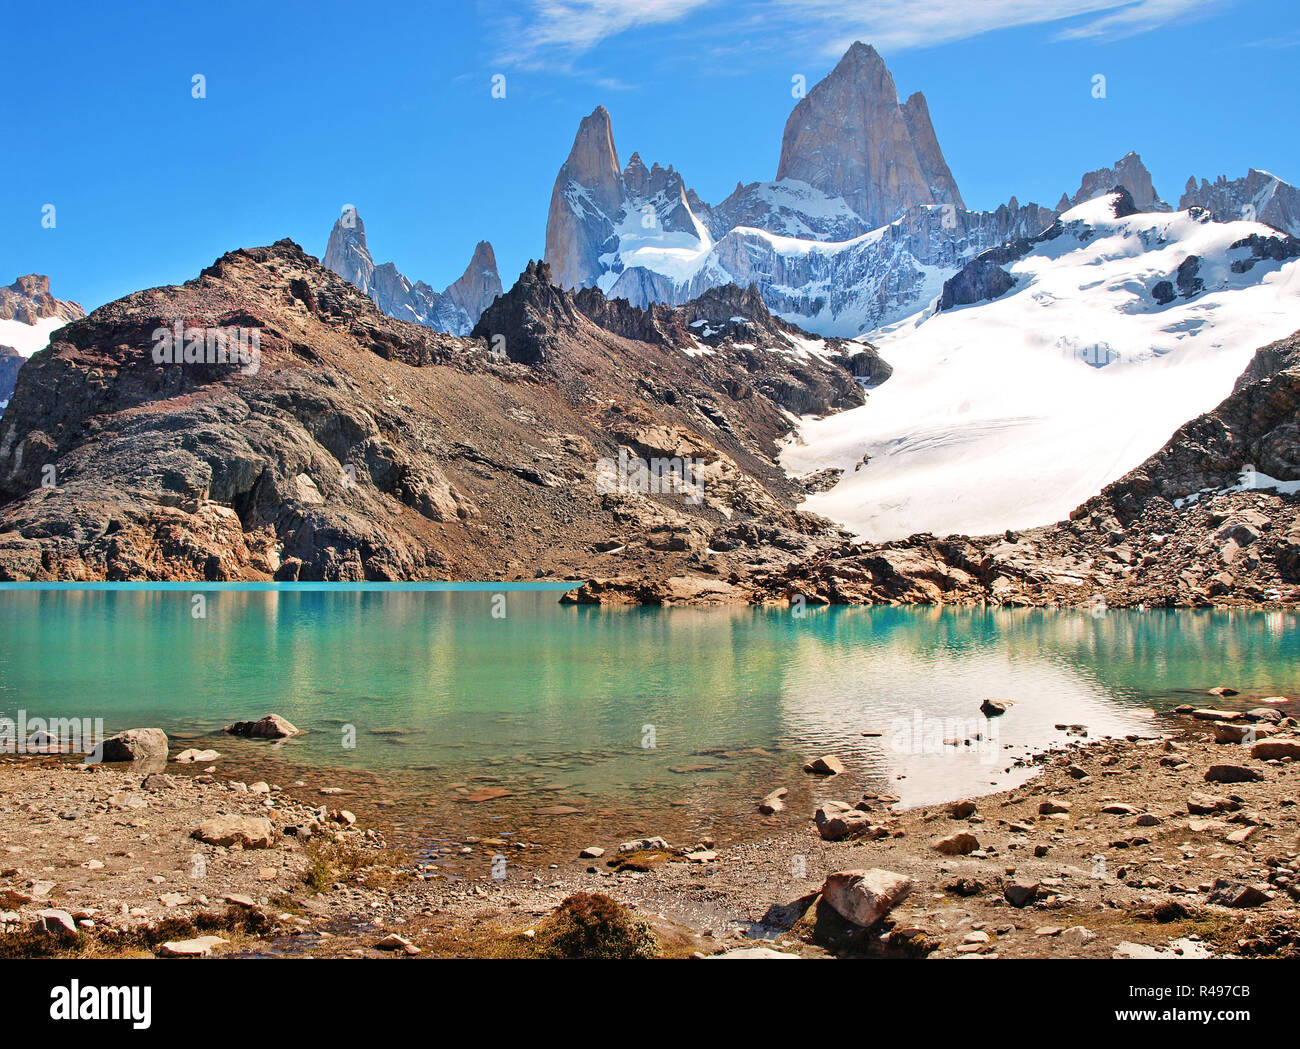 Mountain landscape with Mt Fitz Roy and Laguna de Los Tres in Los Glaciares National Park, Patagonia, Argentina, South America - Stock Image